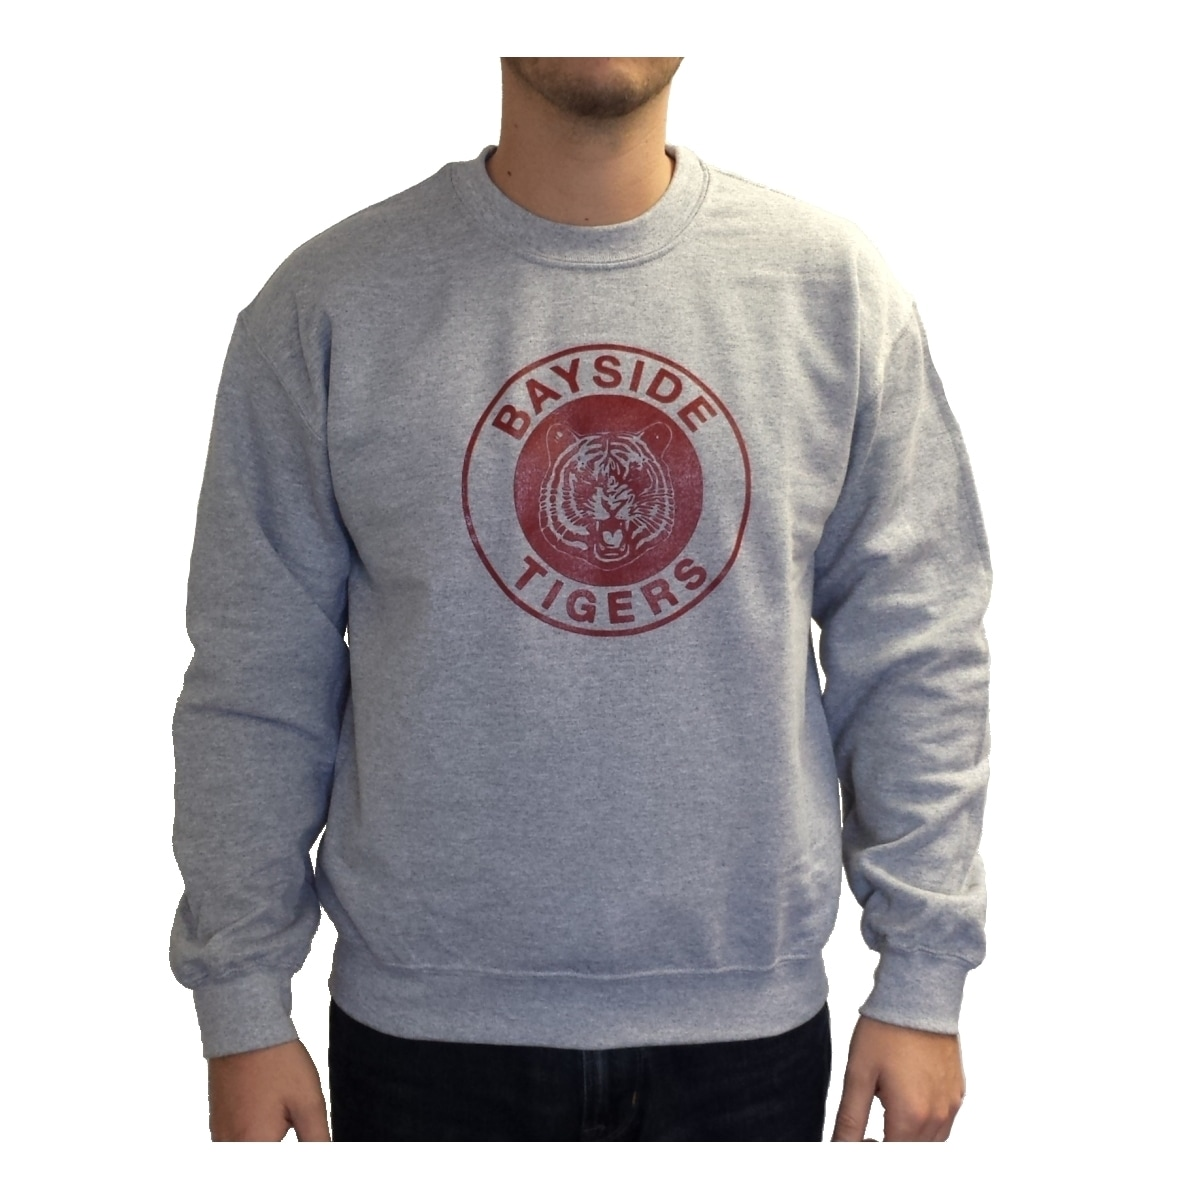 Shop Zack Morris Bayside Tigers Crew Neck Sweatshirt Saved By The ...